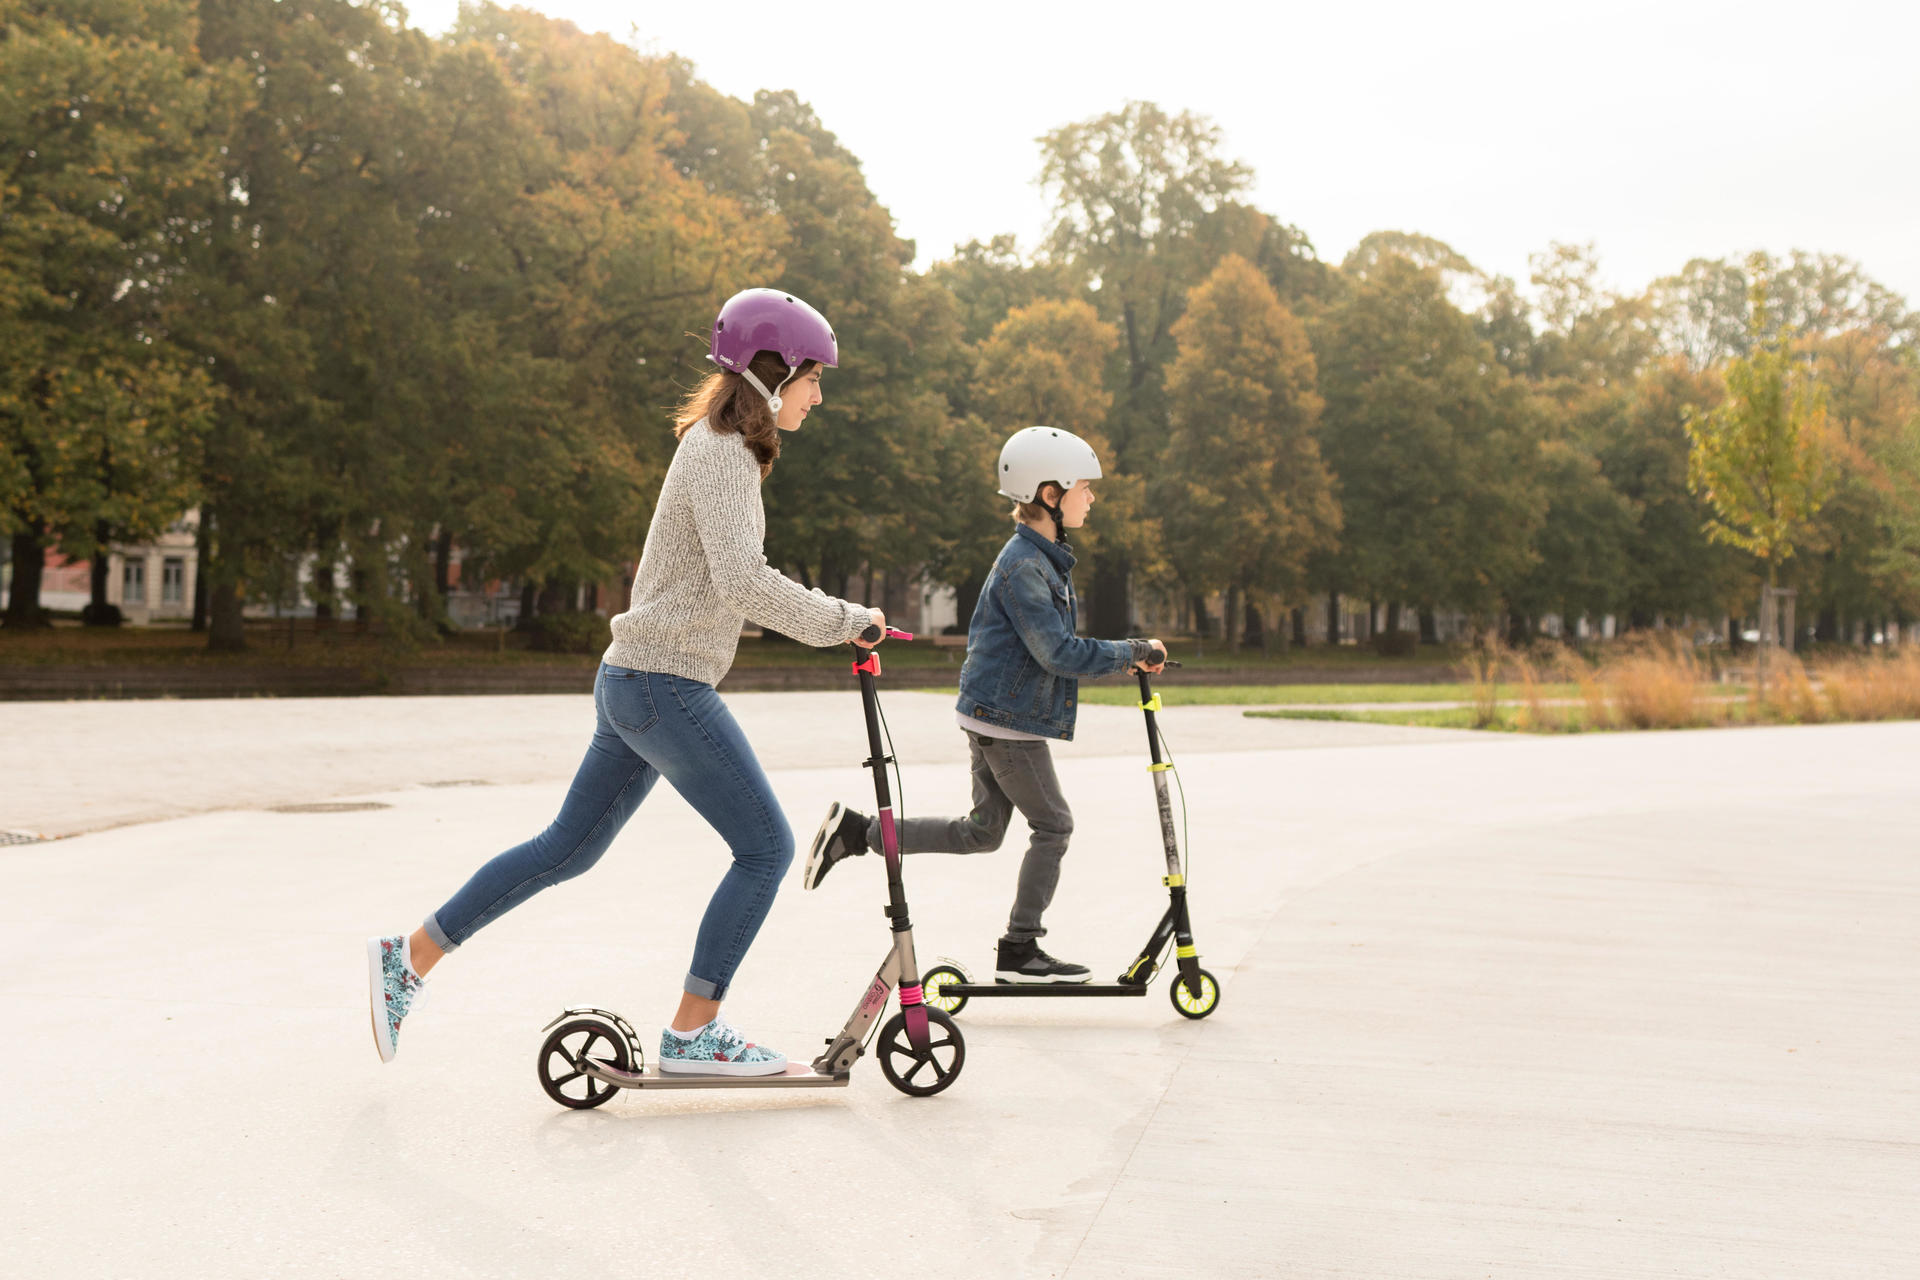 Is My Child Ready To Ride A Kick Scooter?